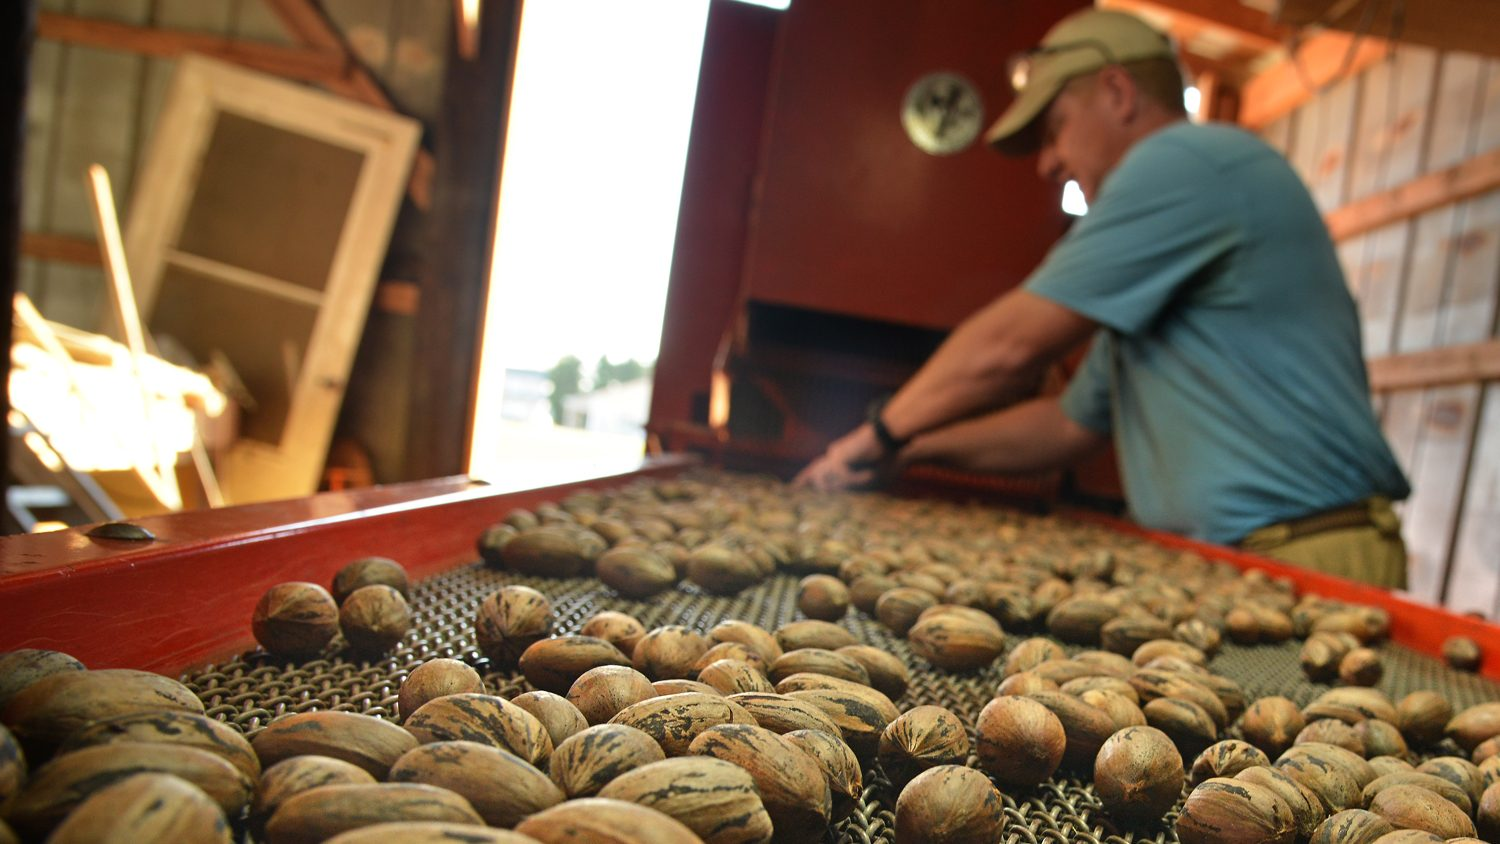 Harvested pecans on proctuction line